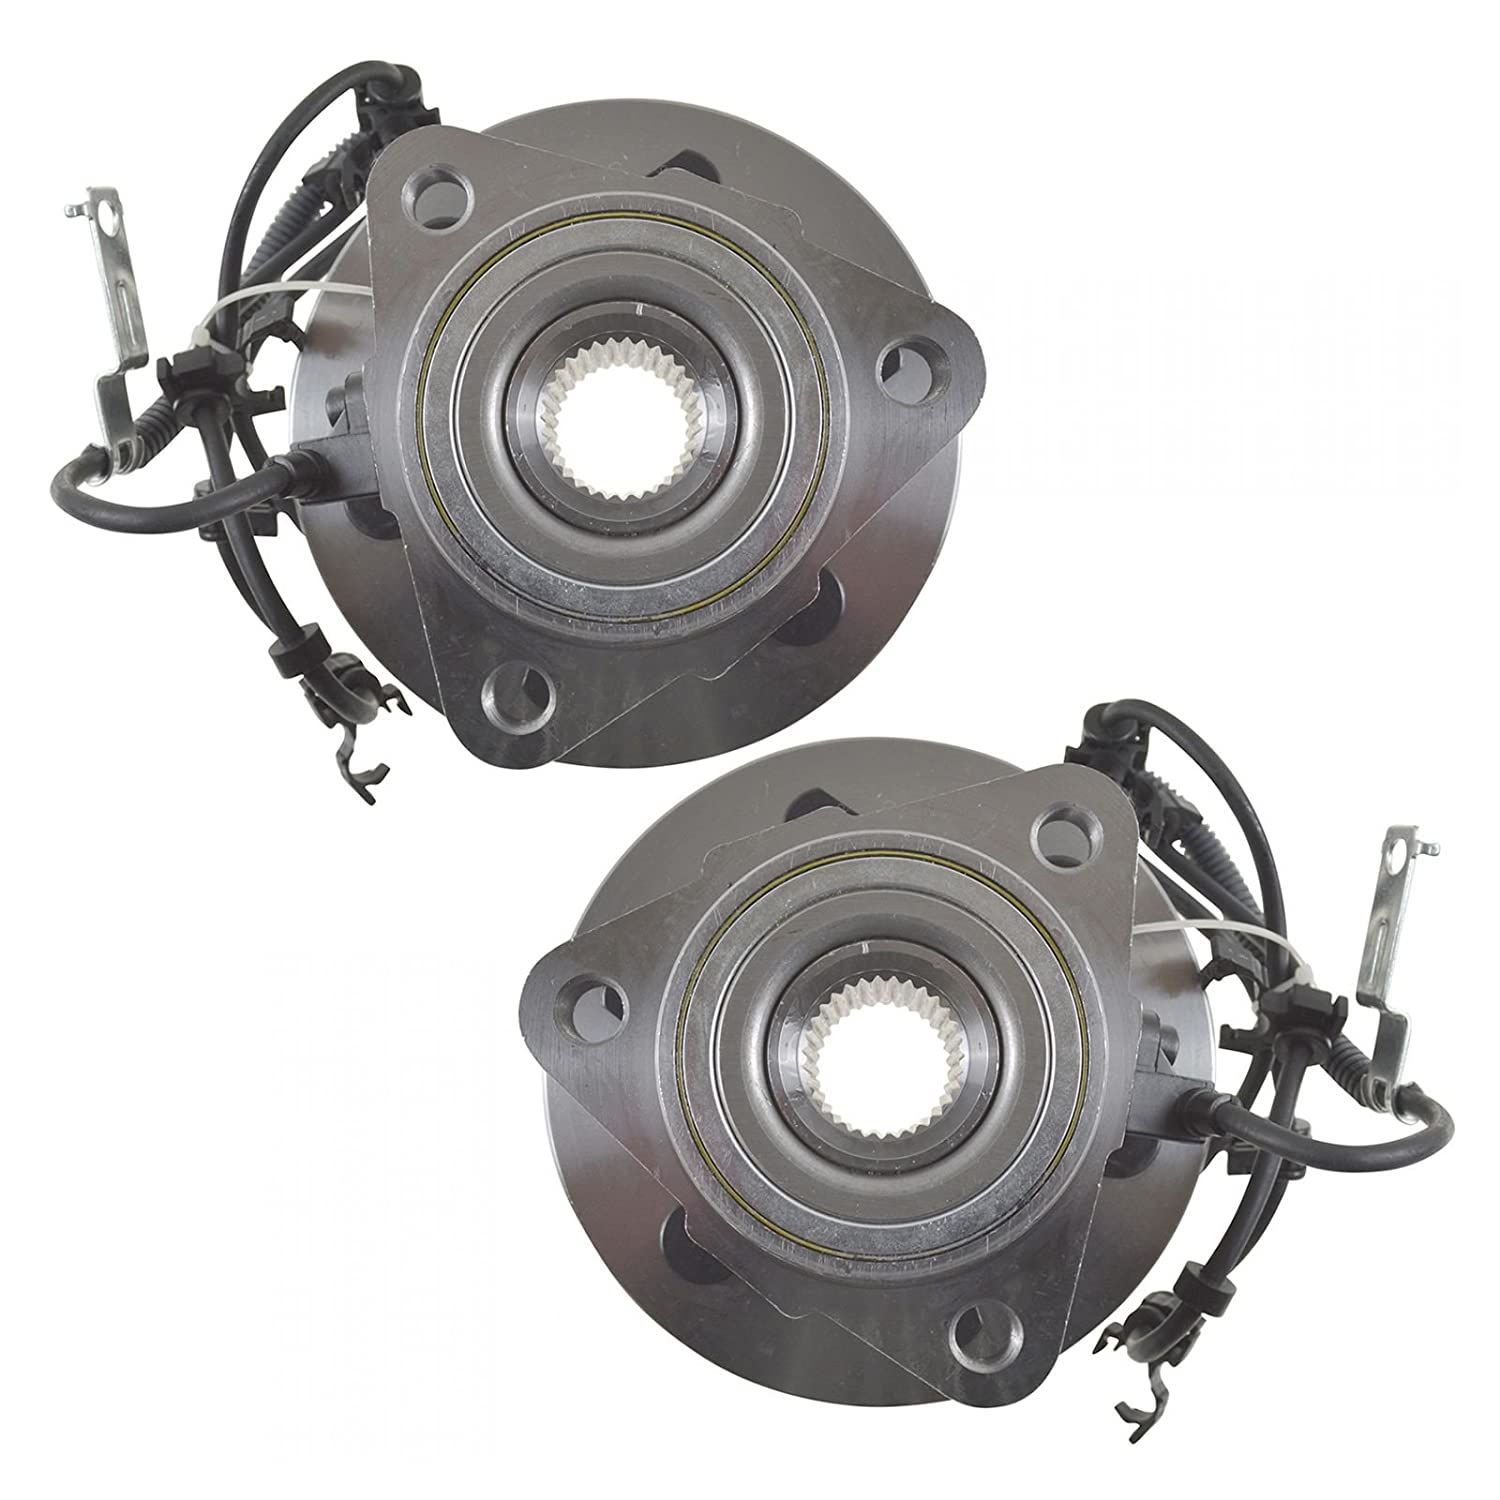 Front Wheel Hubs /& Bearings Pair Set of 2 for Dakota Durango 4WD 4x4 w//ABS